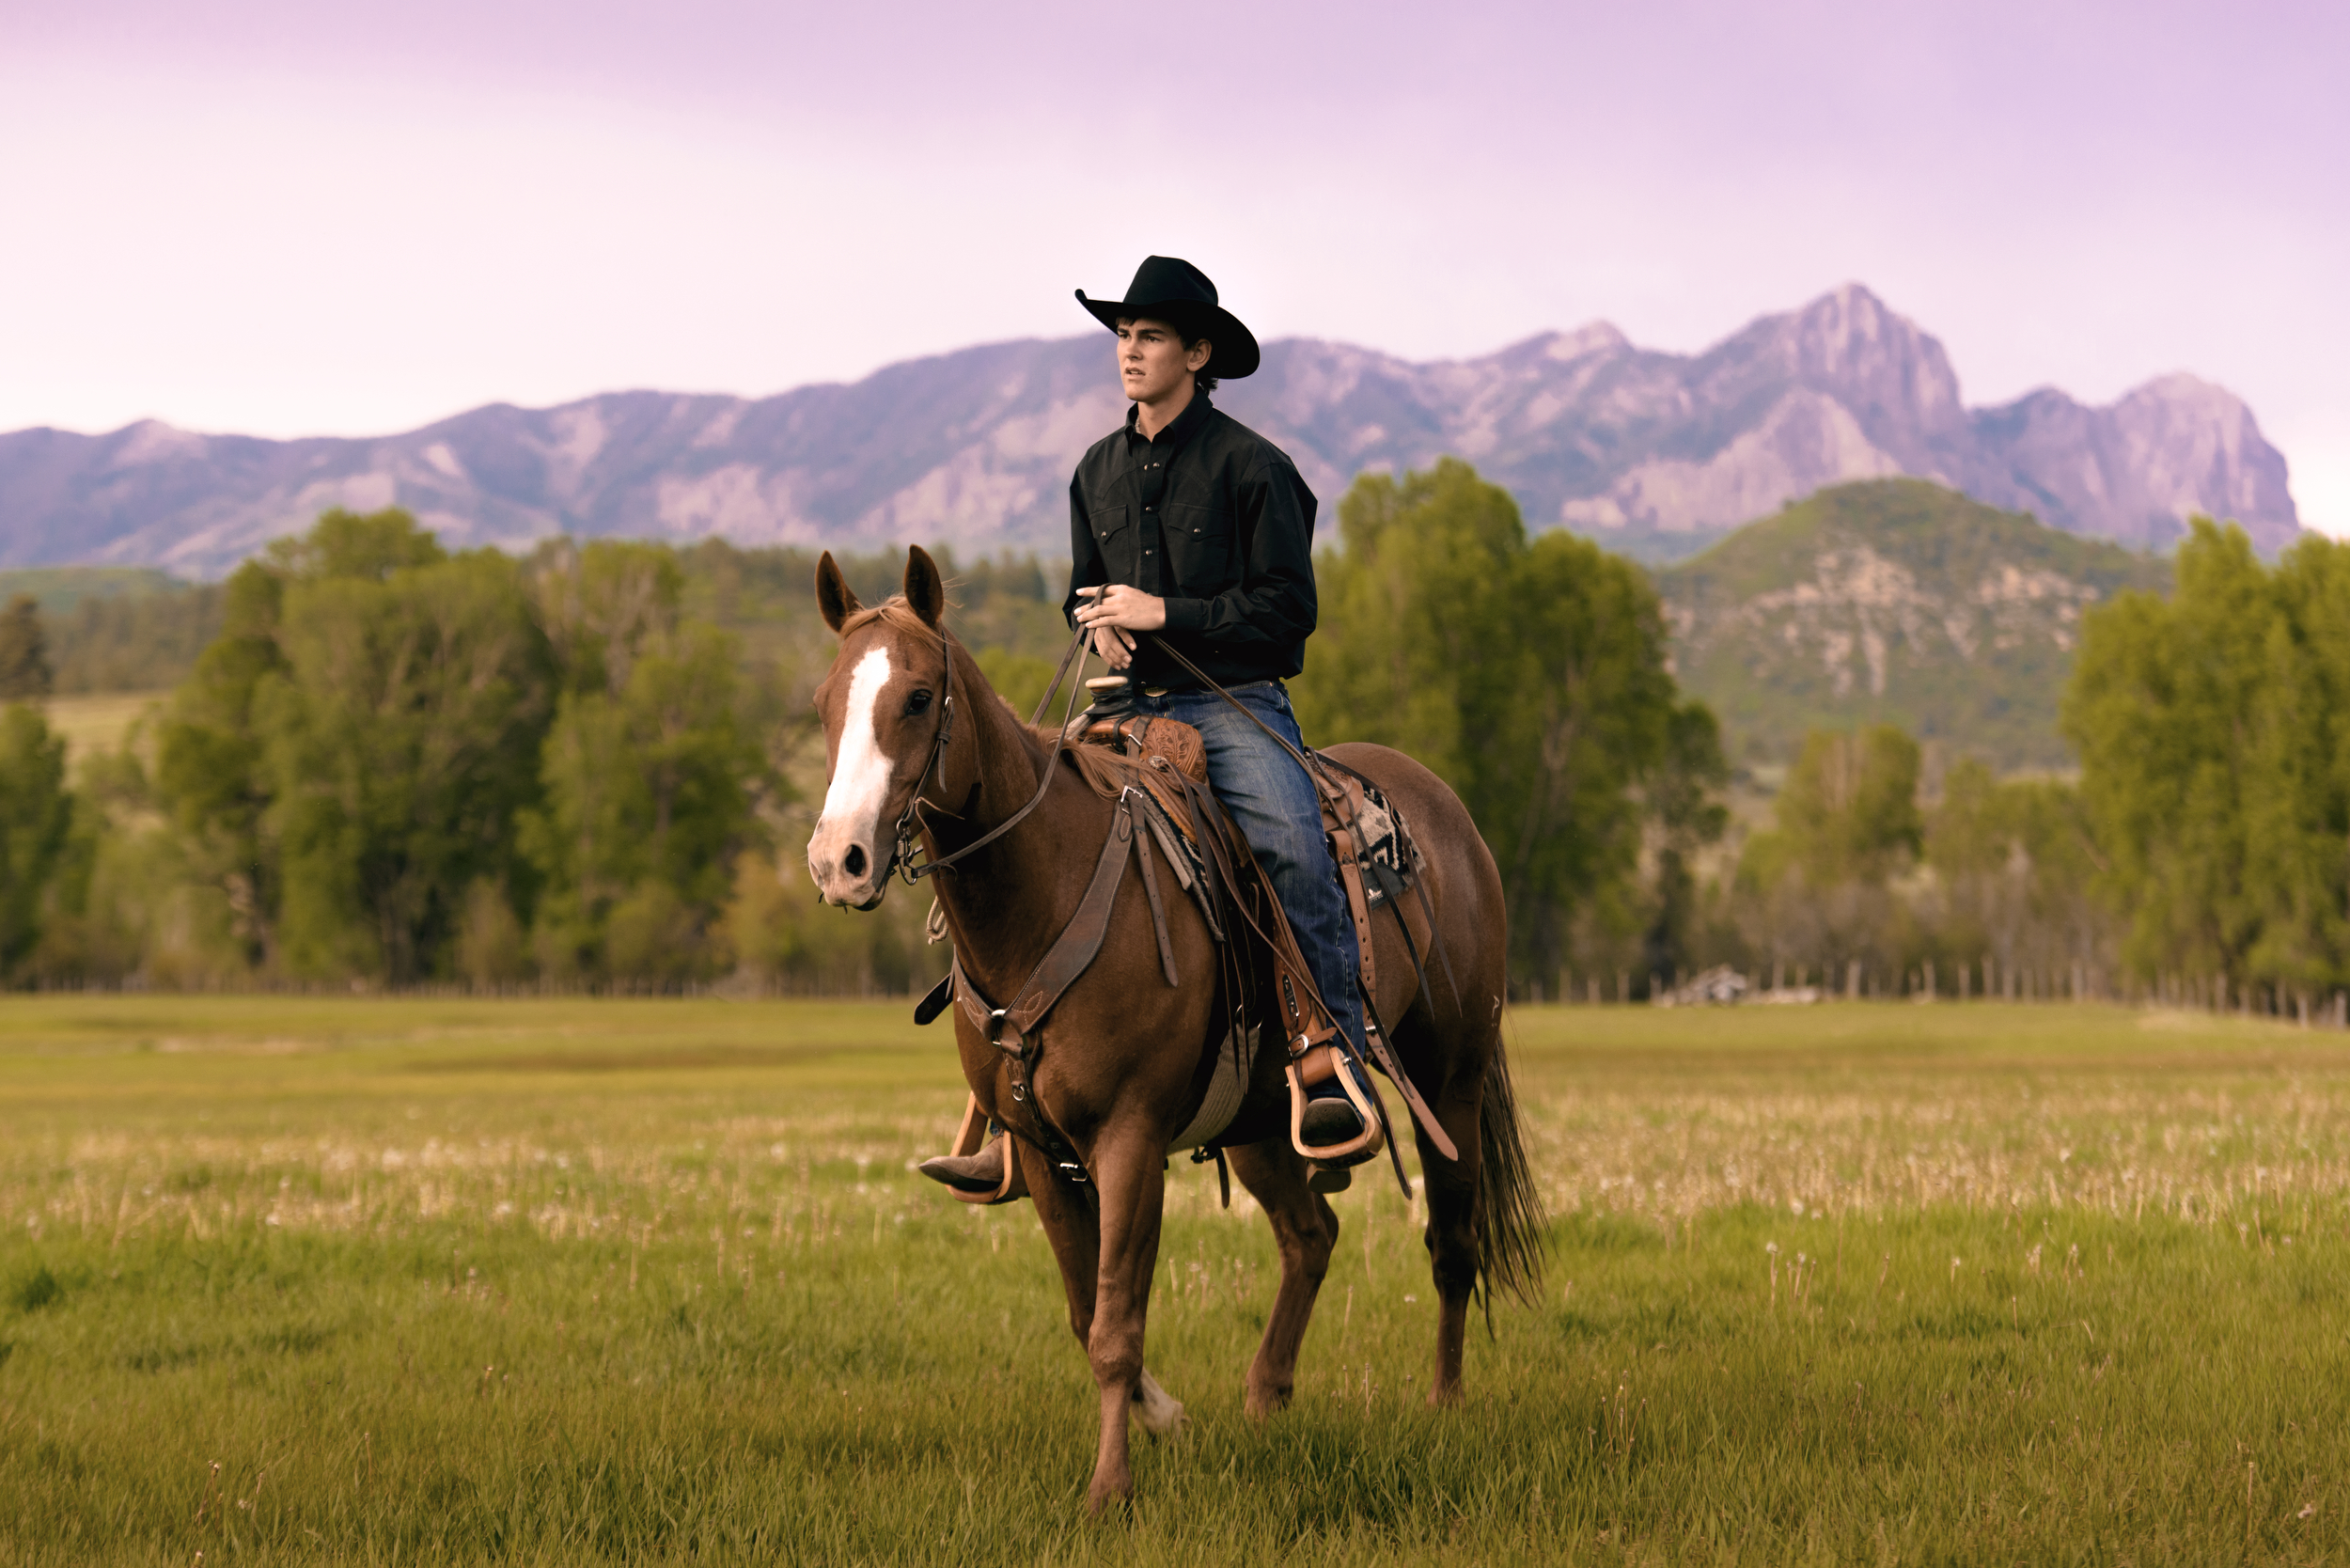 Cowboy riding a horse at sunset in the Southern San Juan mountains of Colorado